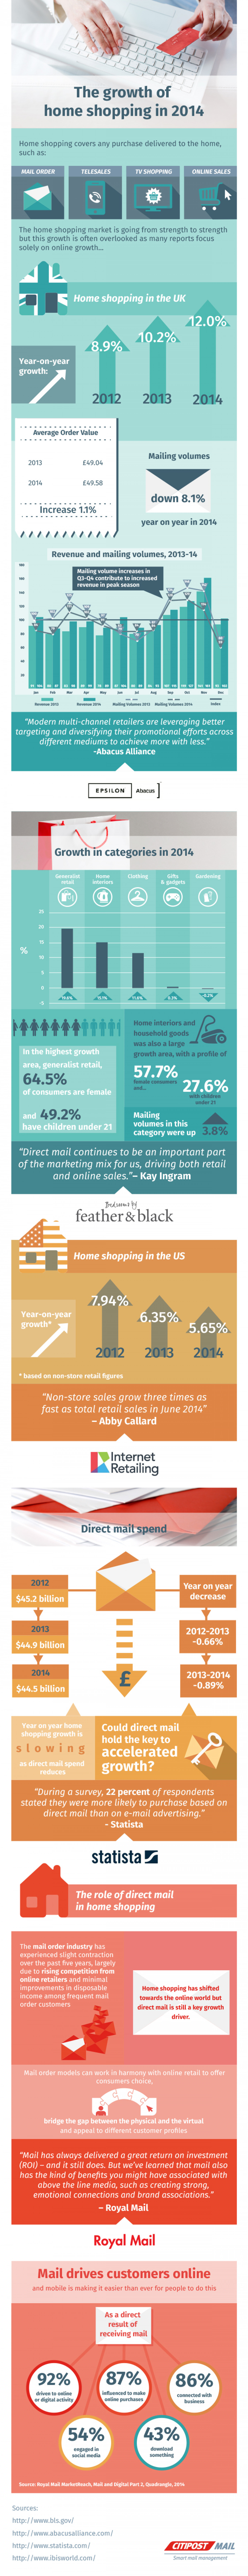 The Growth of Home Shopping Infographic